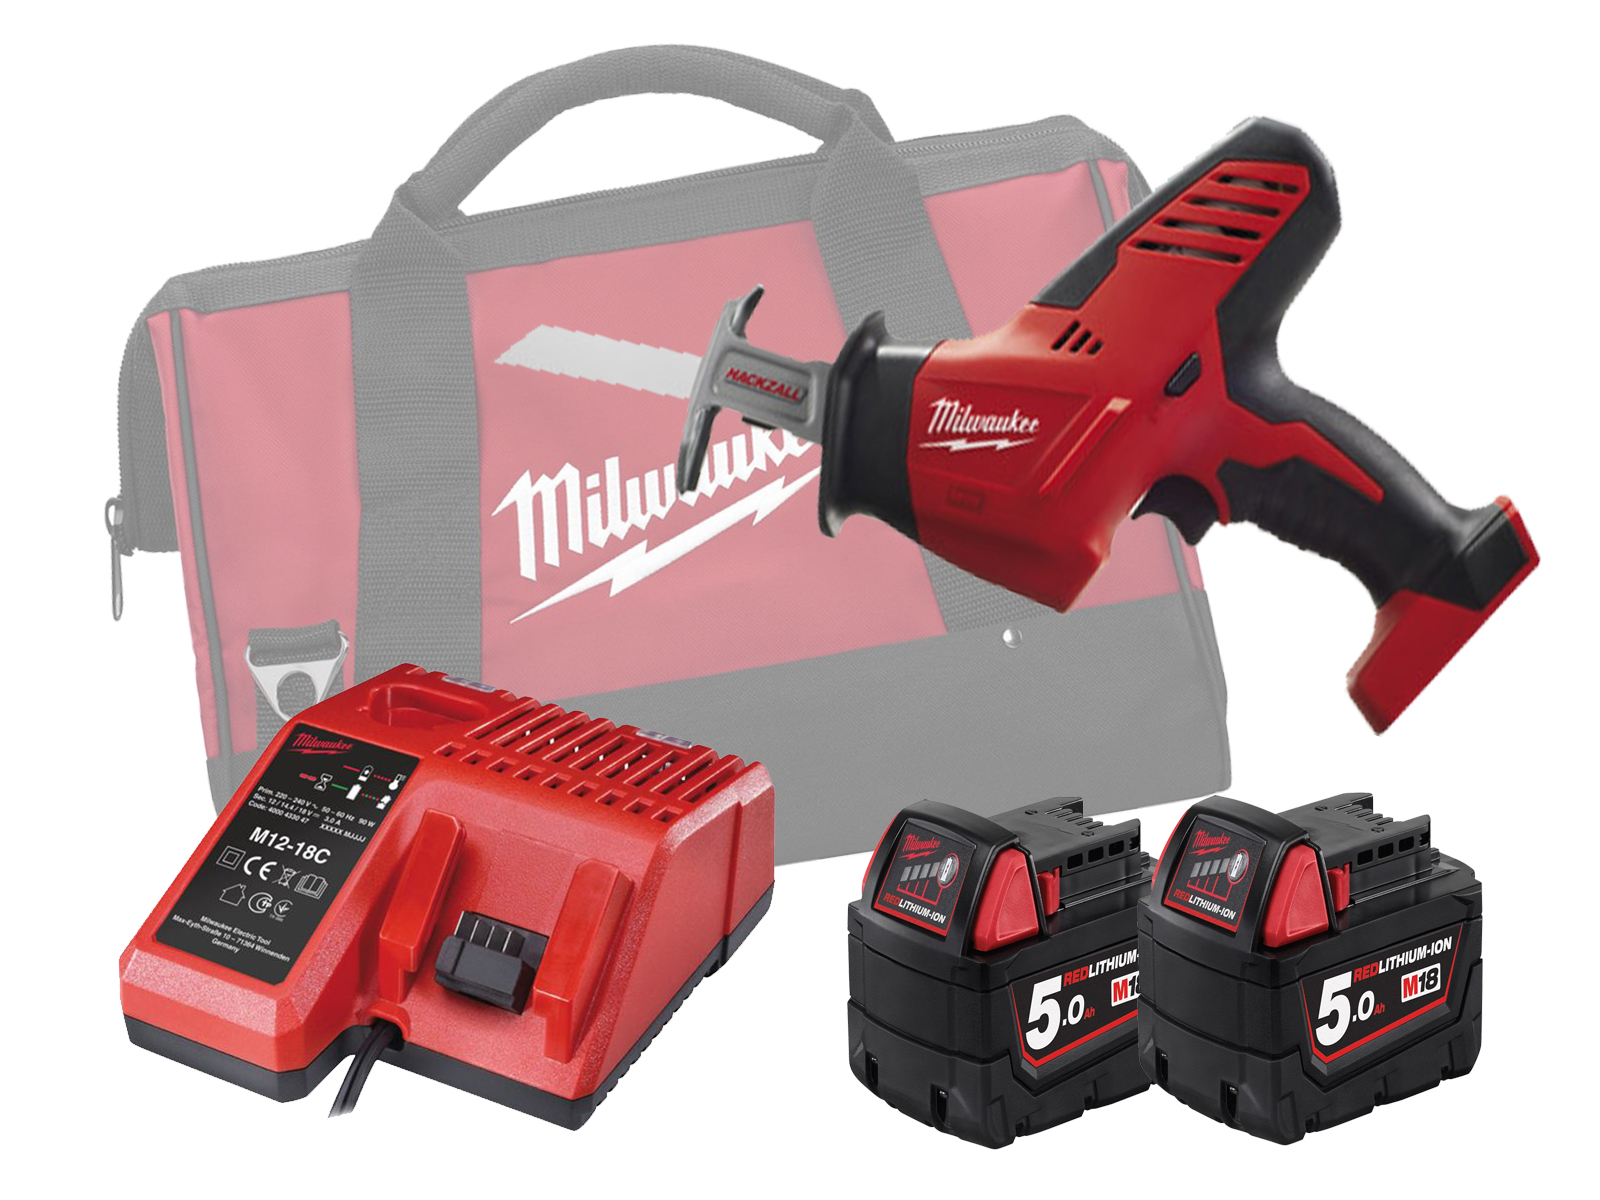 MILWAUKEE 18V BRUSHED COMPACT HACKZALL - C18HZ - 5.0AH PACK